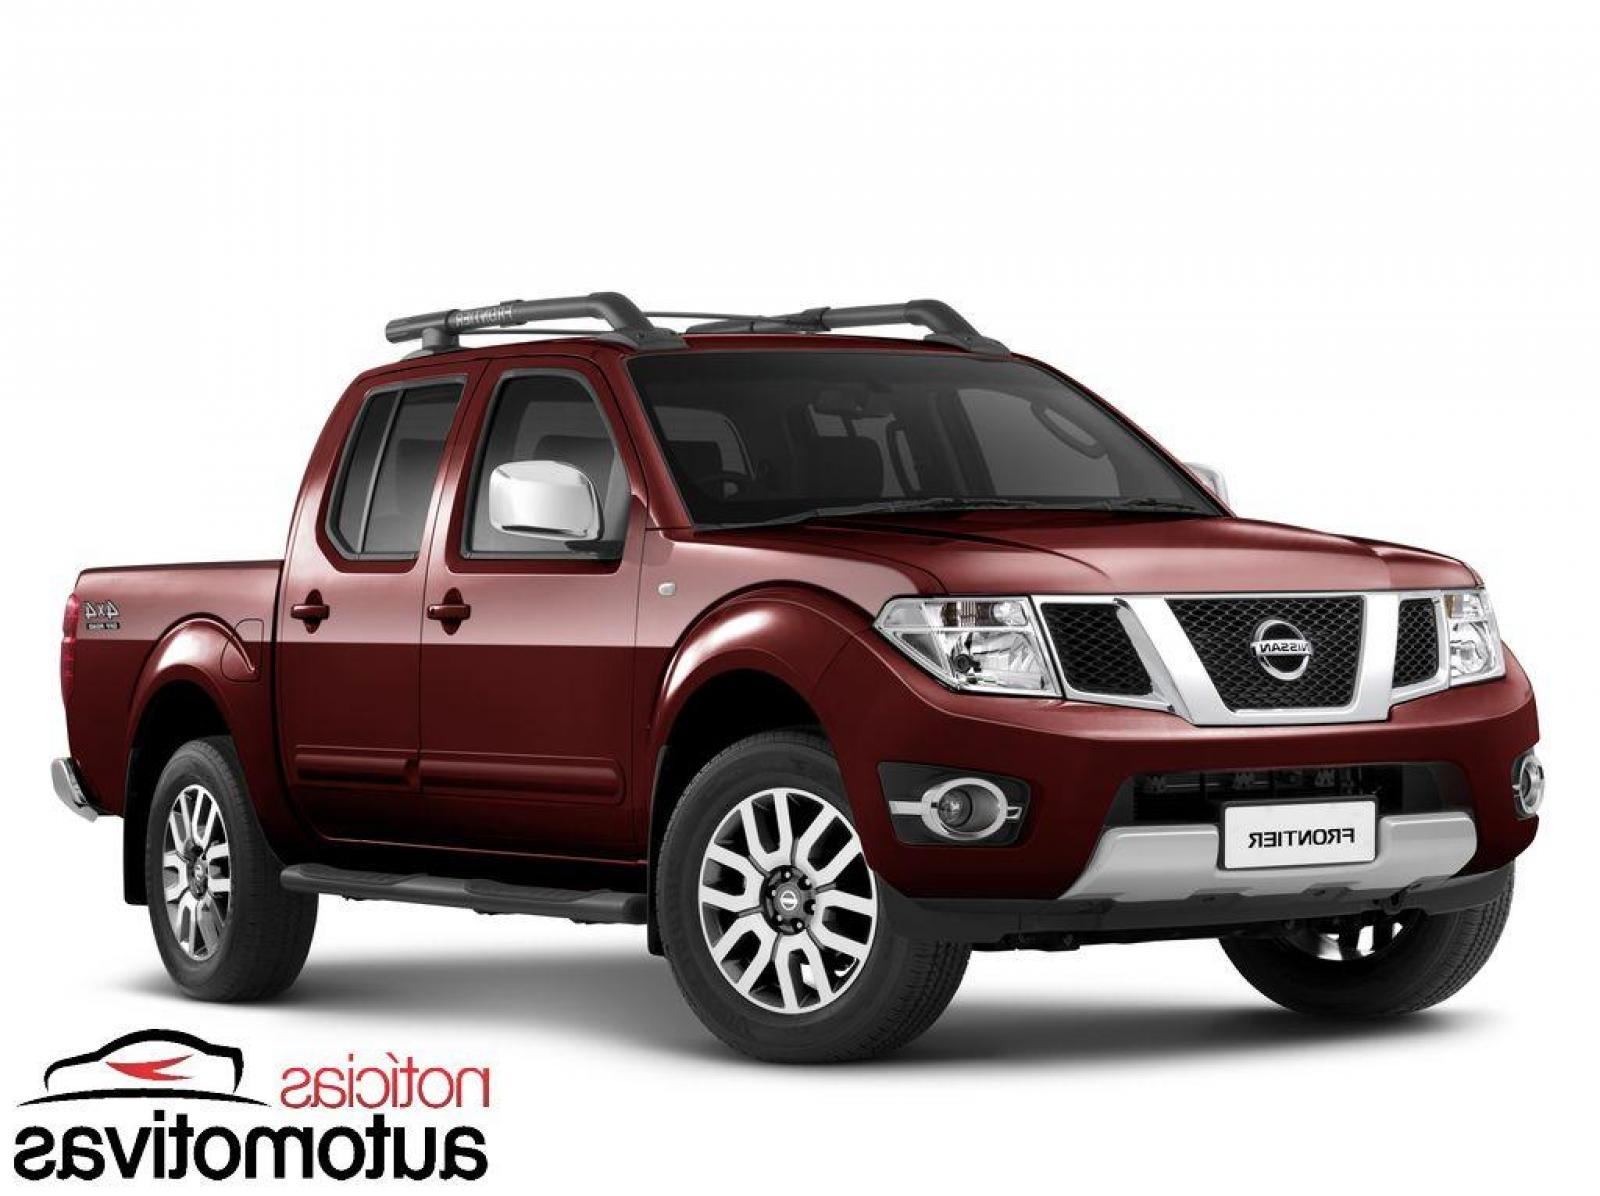 2014 nissan frontier camshaft drive autos post. Black Bedroom Furniture Sets. Home Design Ideas